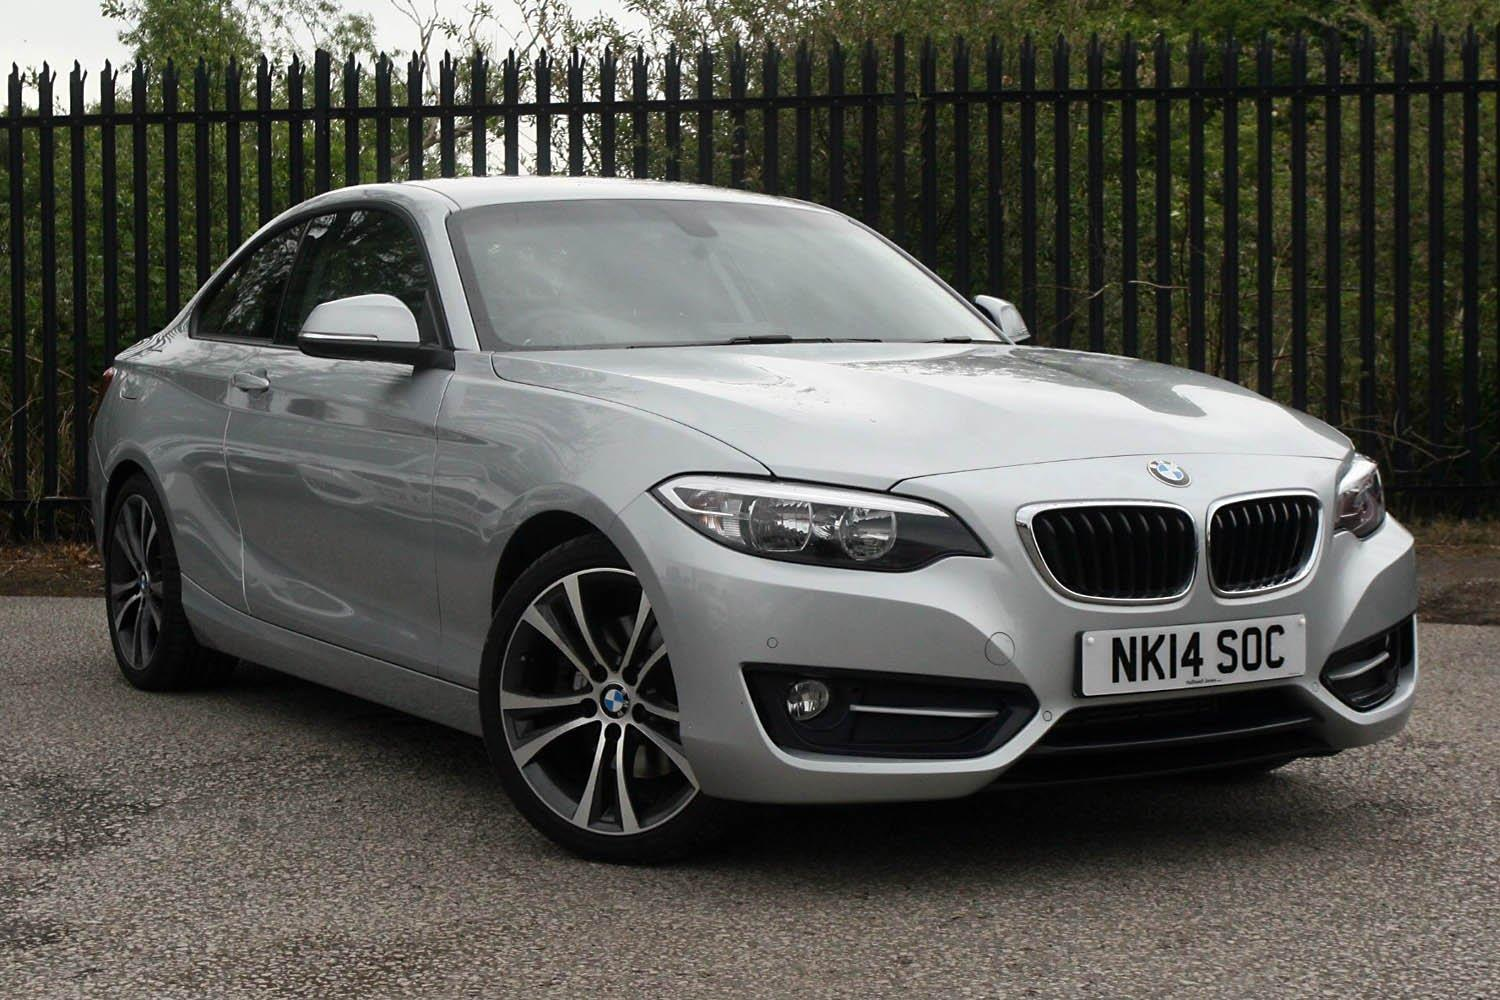 BMW 2 Series Coupé NK14SOC - Image 10